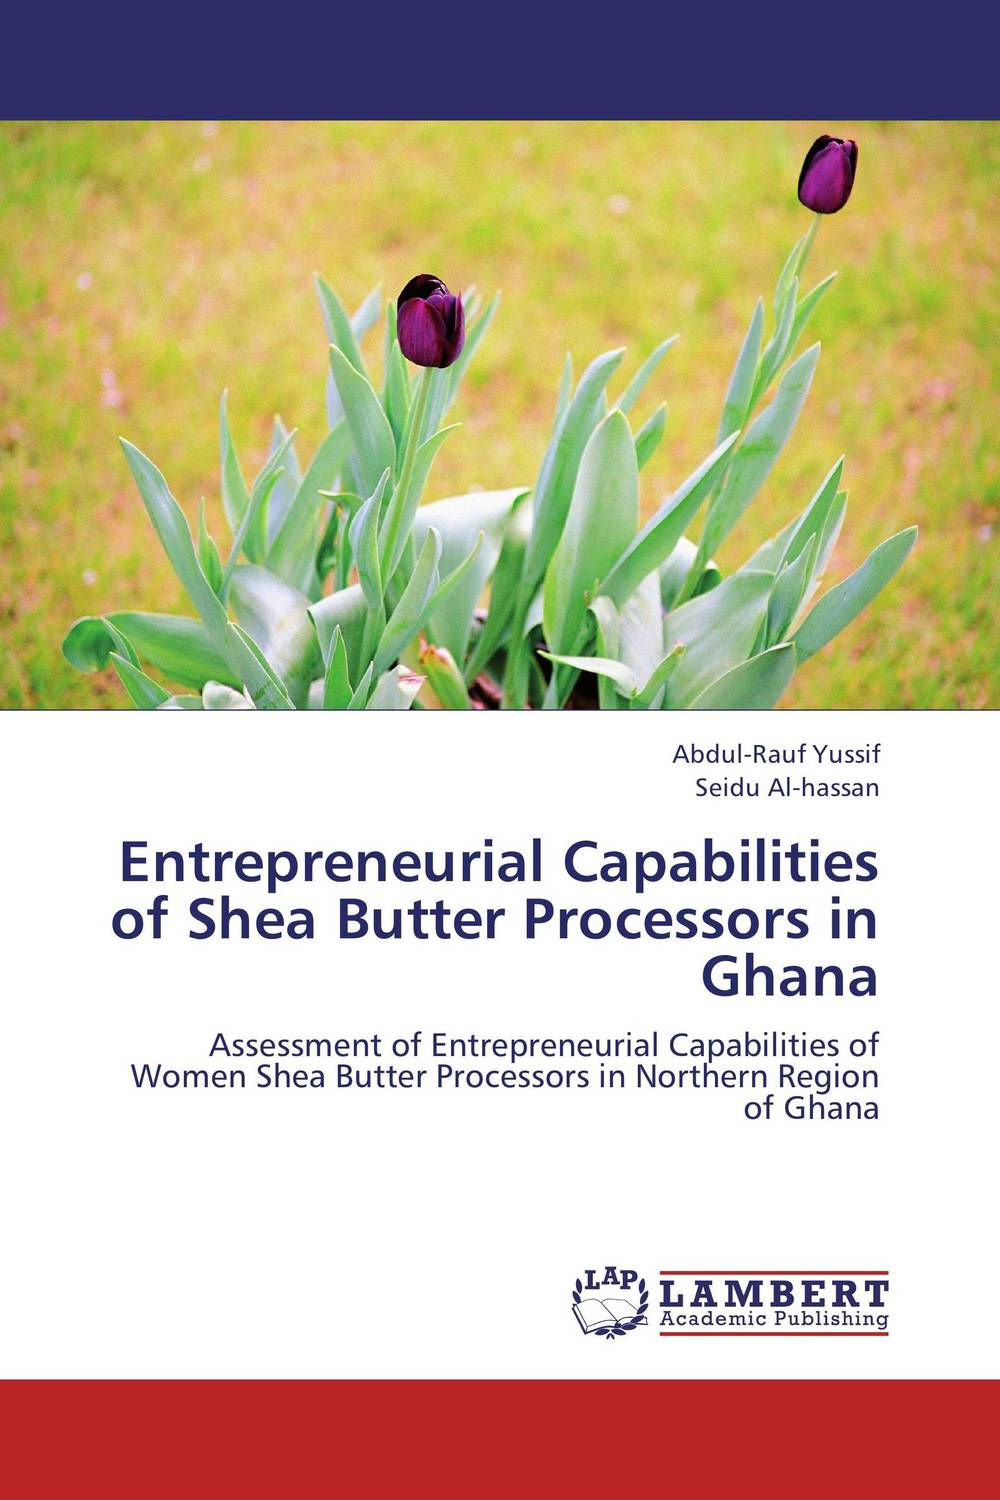 Entrepreneurial Capabilities of Shea Butter Processors in Ghana abdul rauf yussif and seidu al hassan entrepreneurial capabilities of shea butter processors in ghana